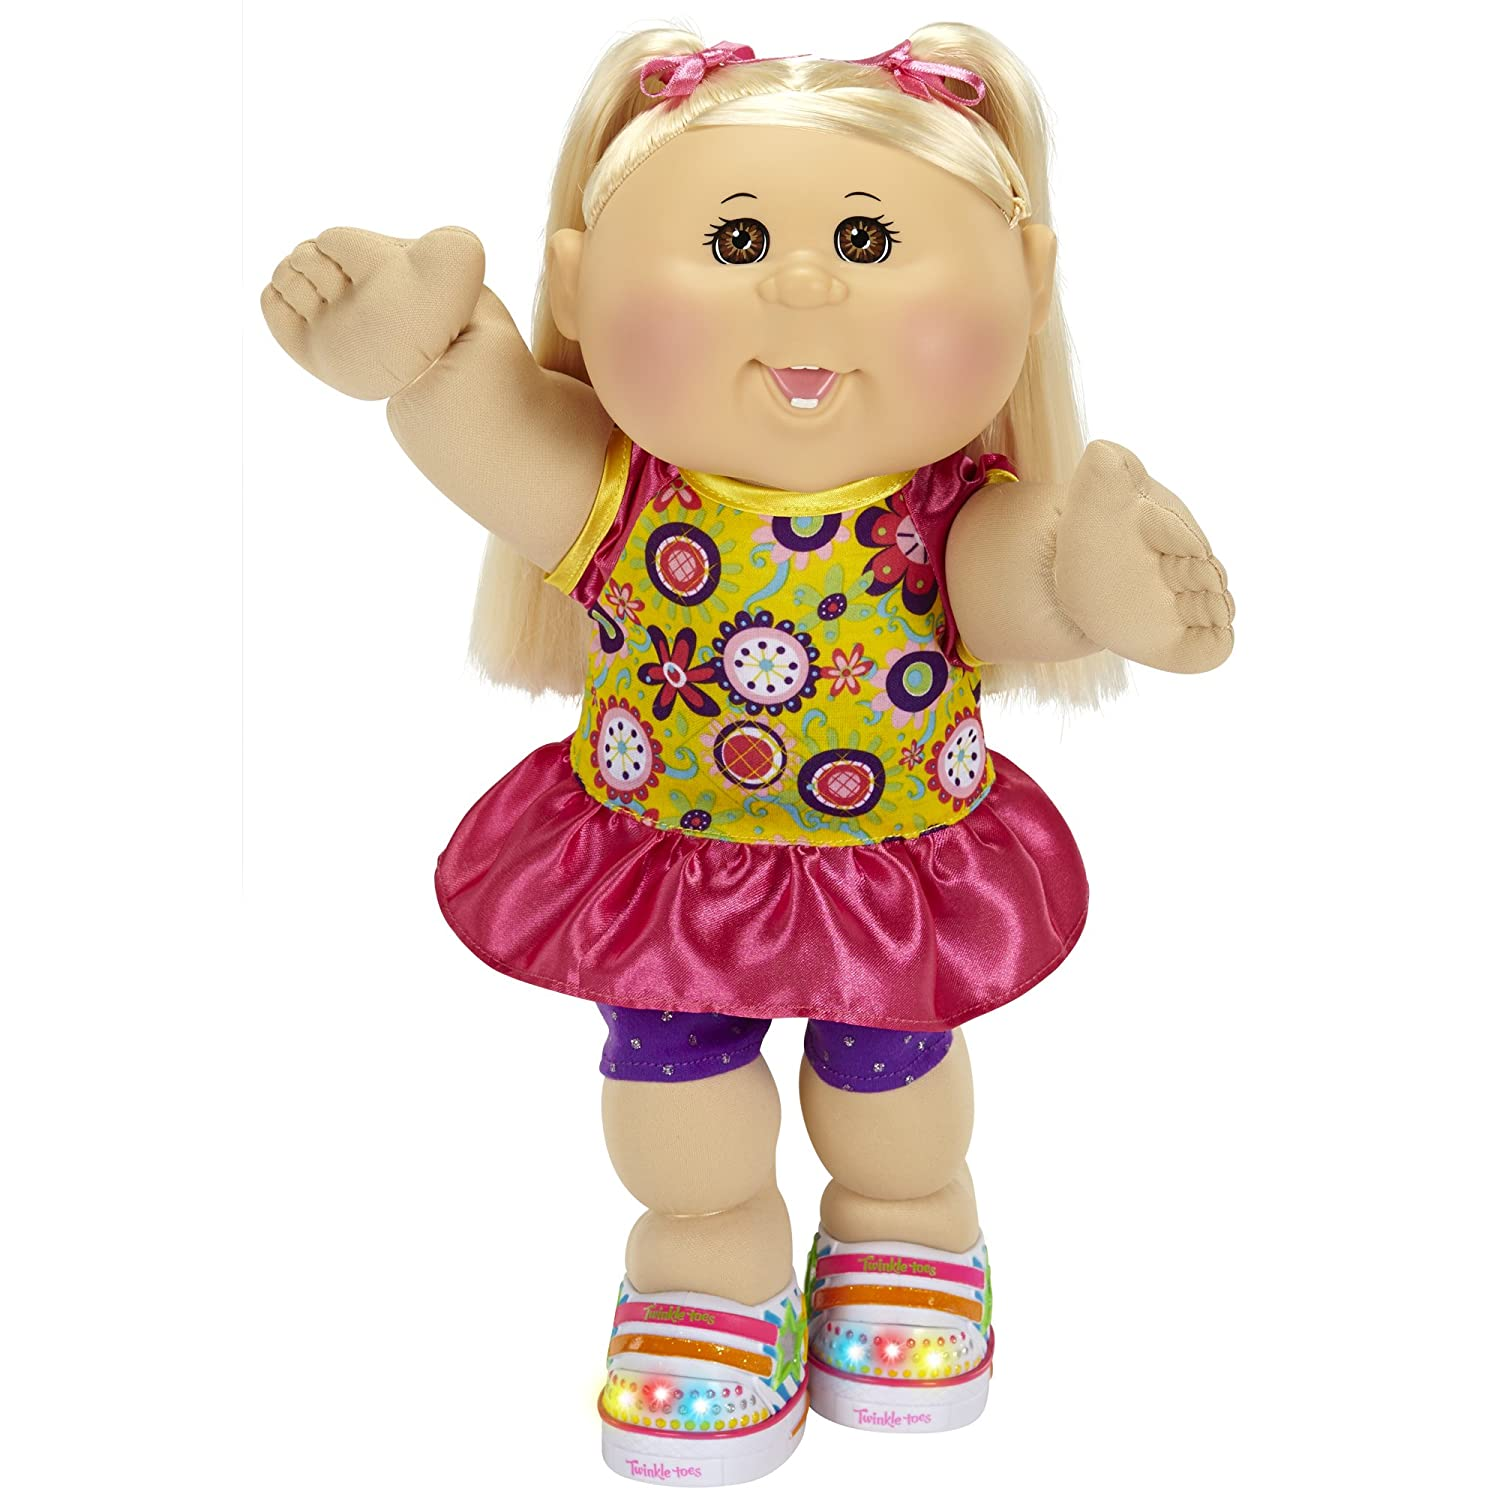 Twinkle Toes Cabbage Patch doll with blonde hair